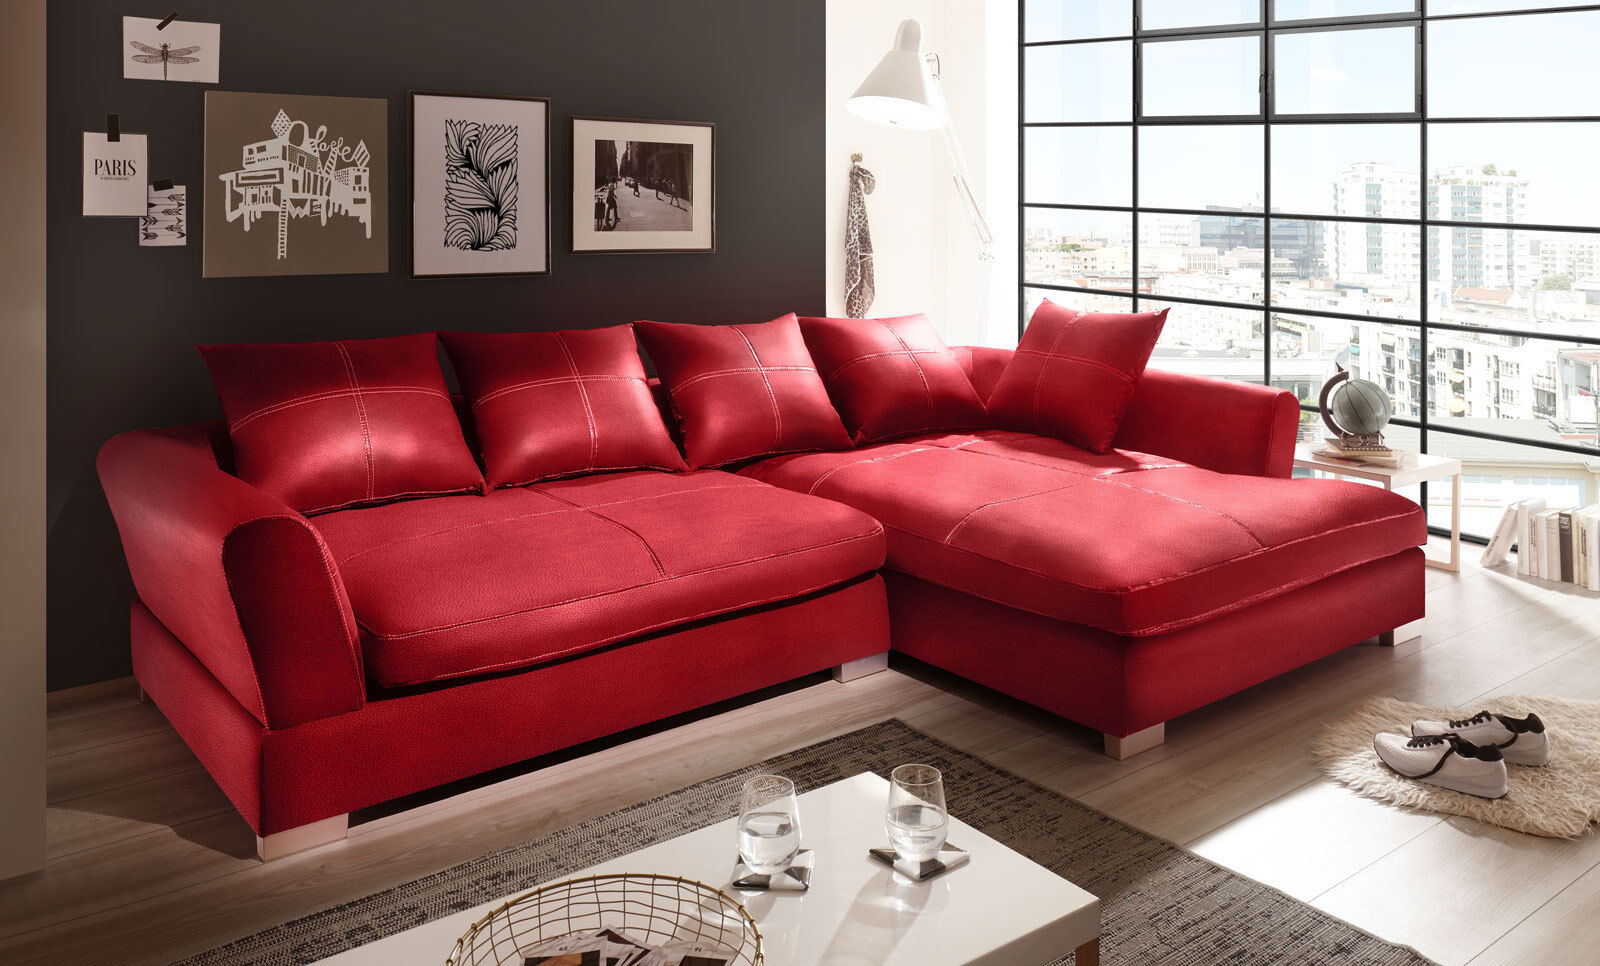 Big Couch Garnitur Design Couchgarnitur Rot Big Sofa K Leder Ecksofa